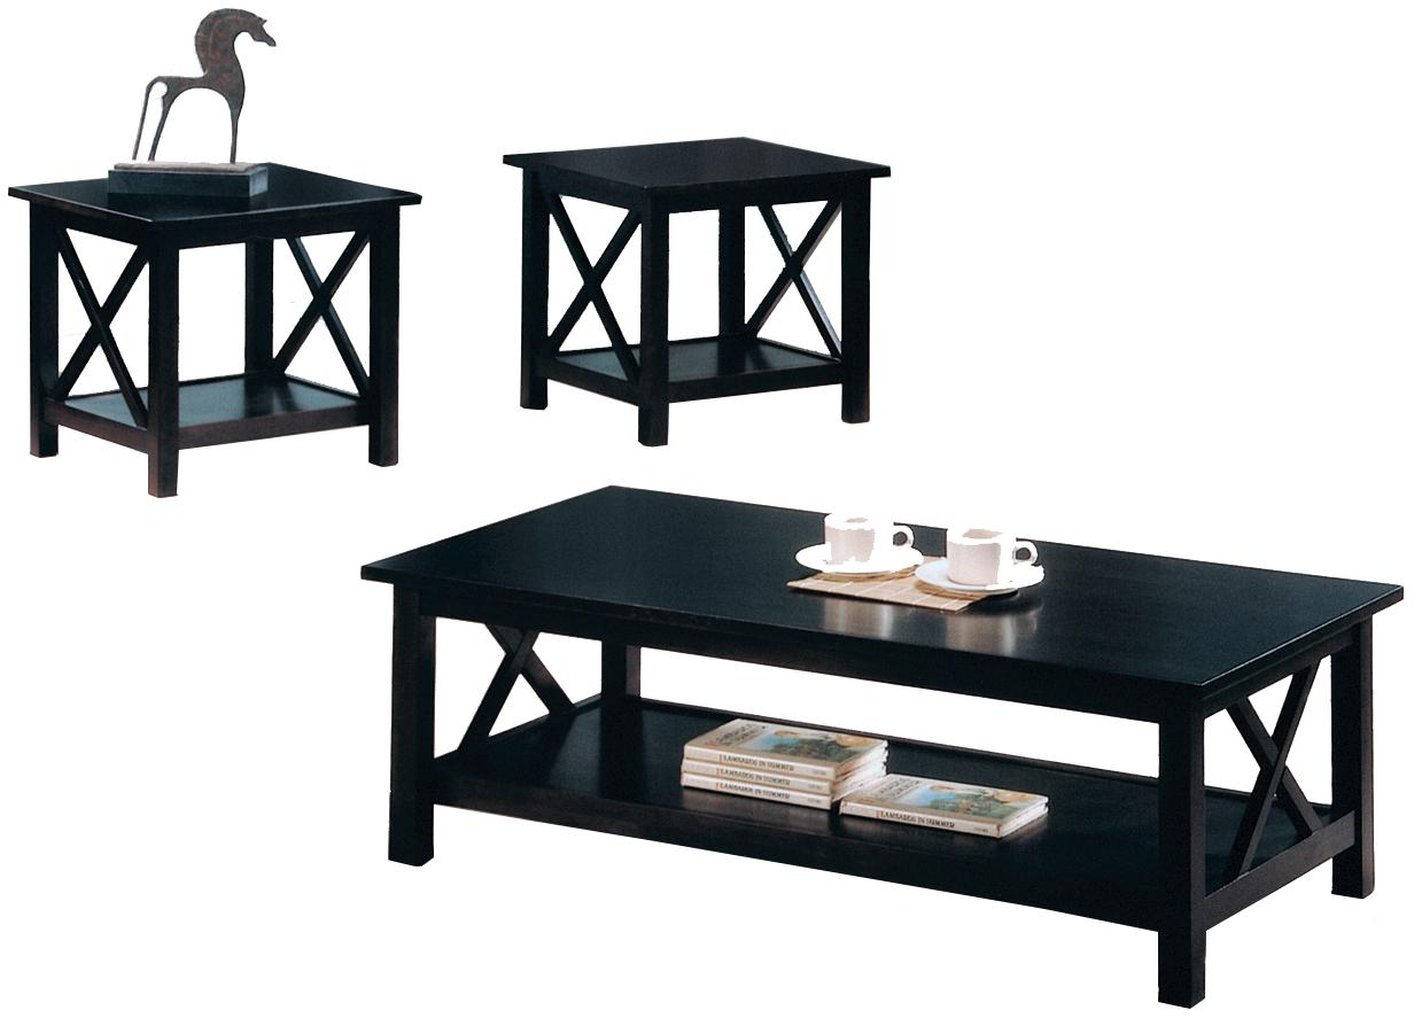 black wood coffee table set steal sofa furniture los dark and end tables angeles ashley whalen graystone dining clear plastic side west elm round marble nightstand brooklyn